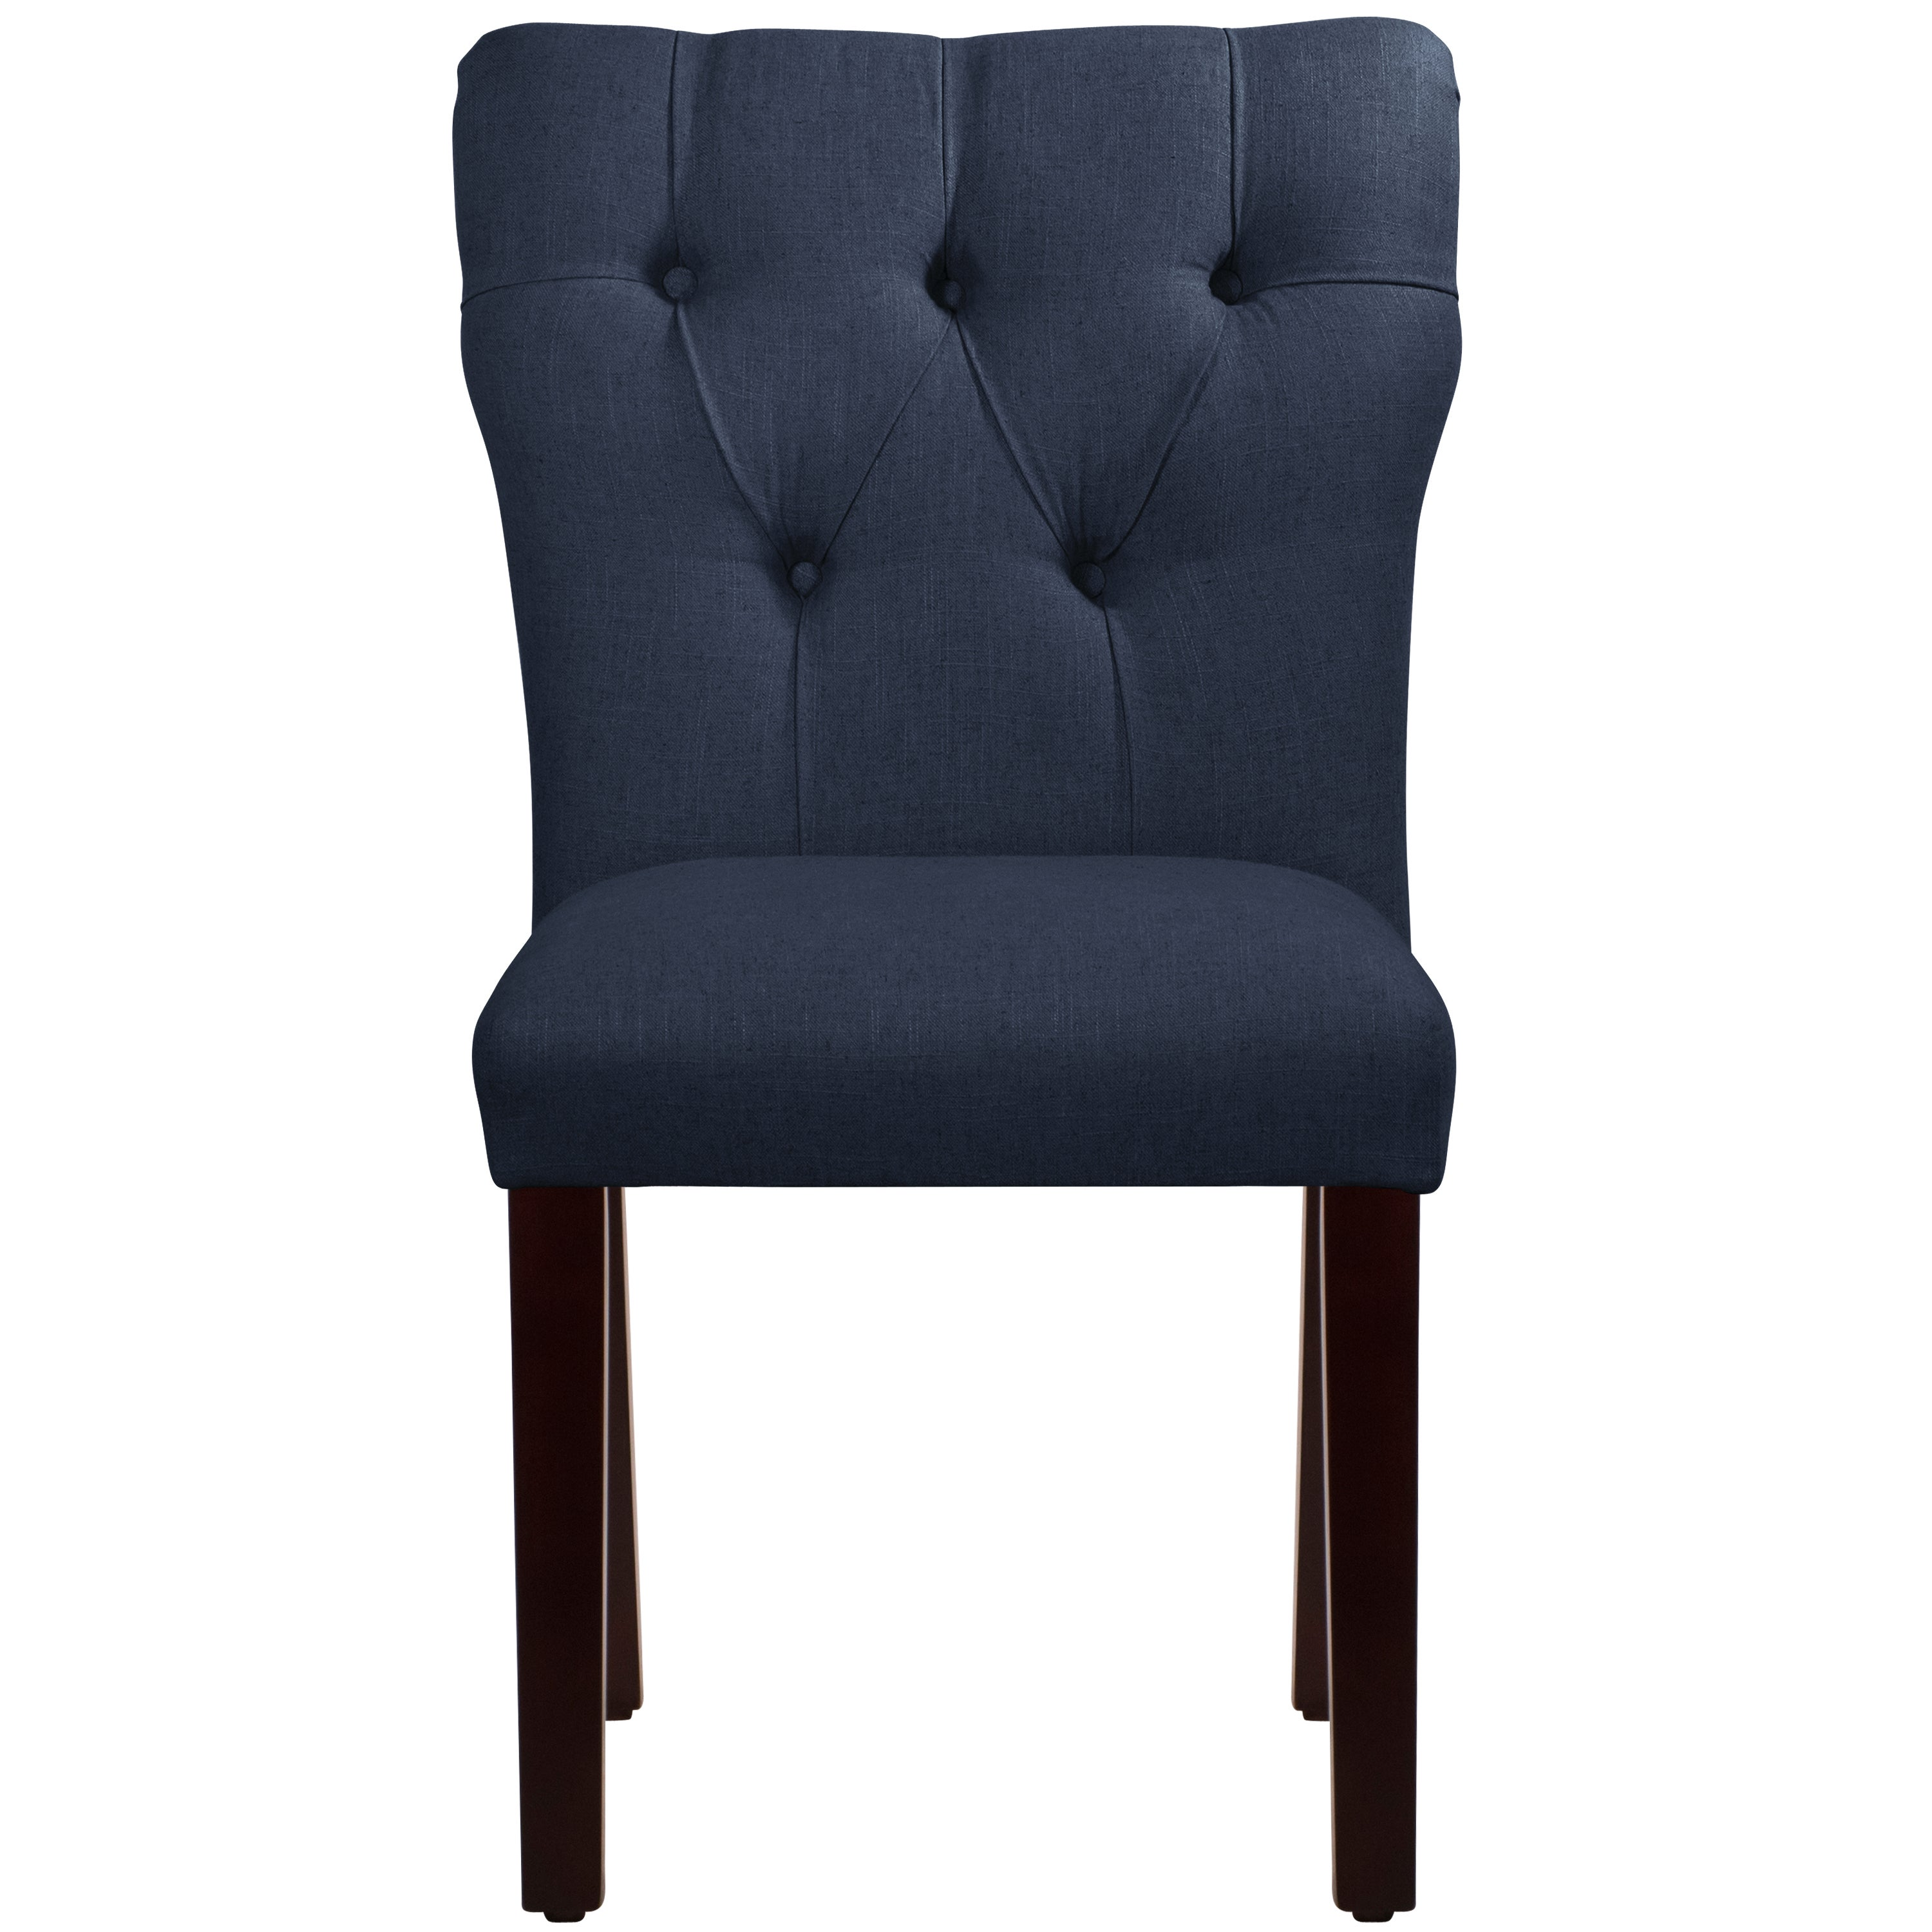 Skyline Furniture Tufted Hourgl Dining Chair In Linen Navy Free Shipping Today 10534647